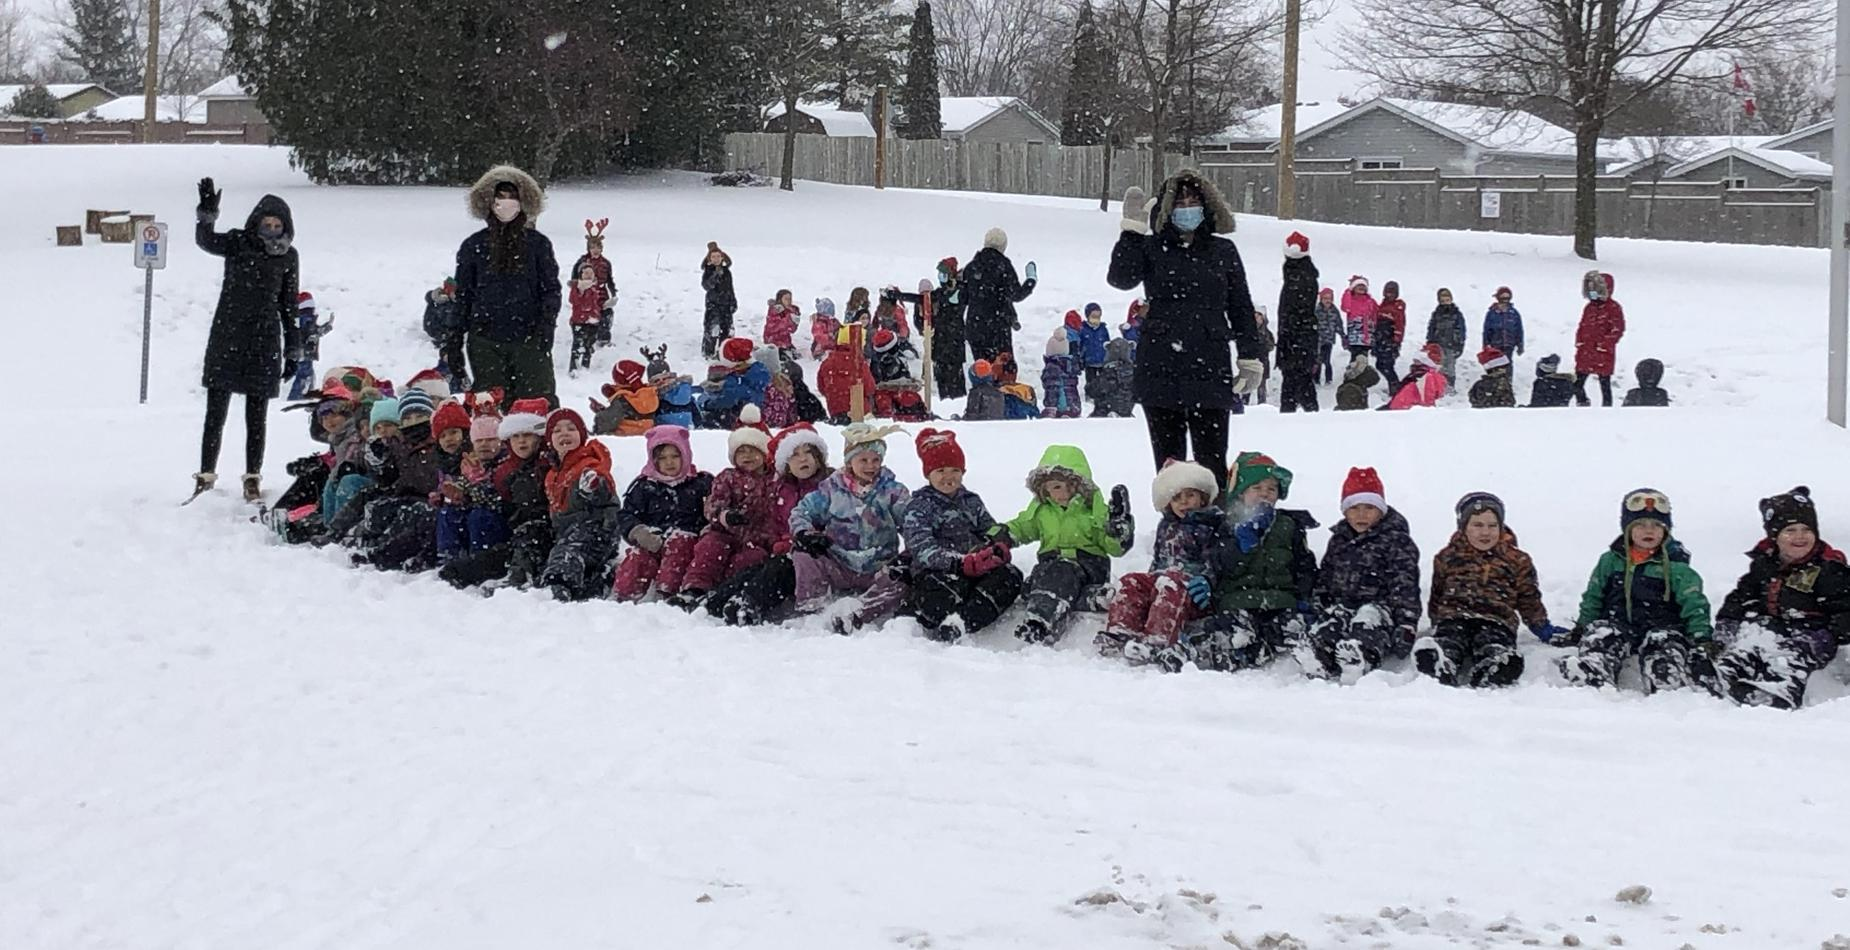 Primary students sitting in snow watching Christmas Parade